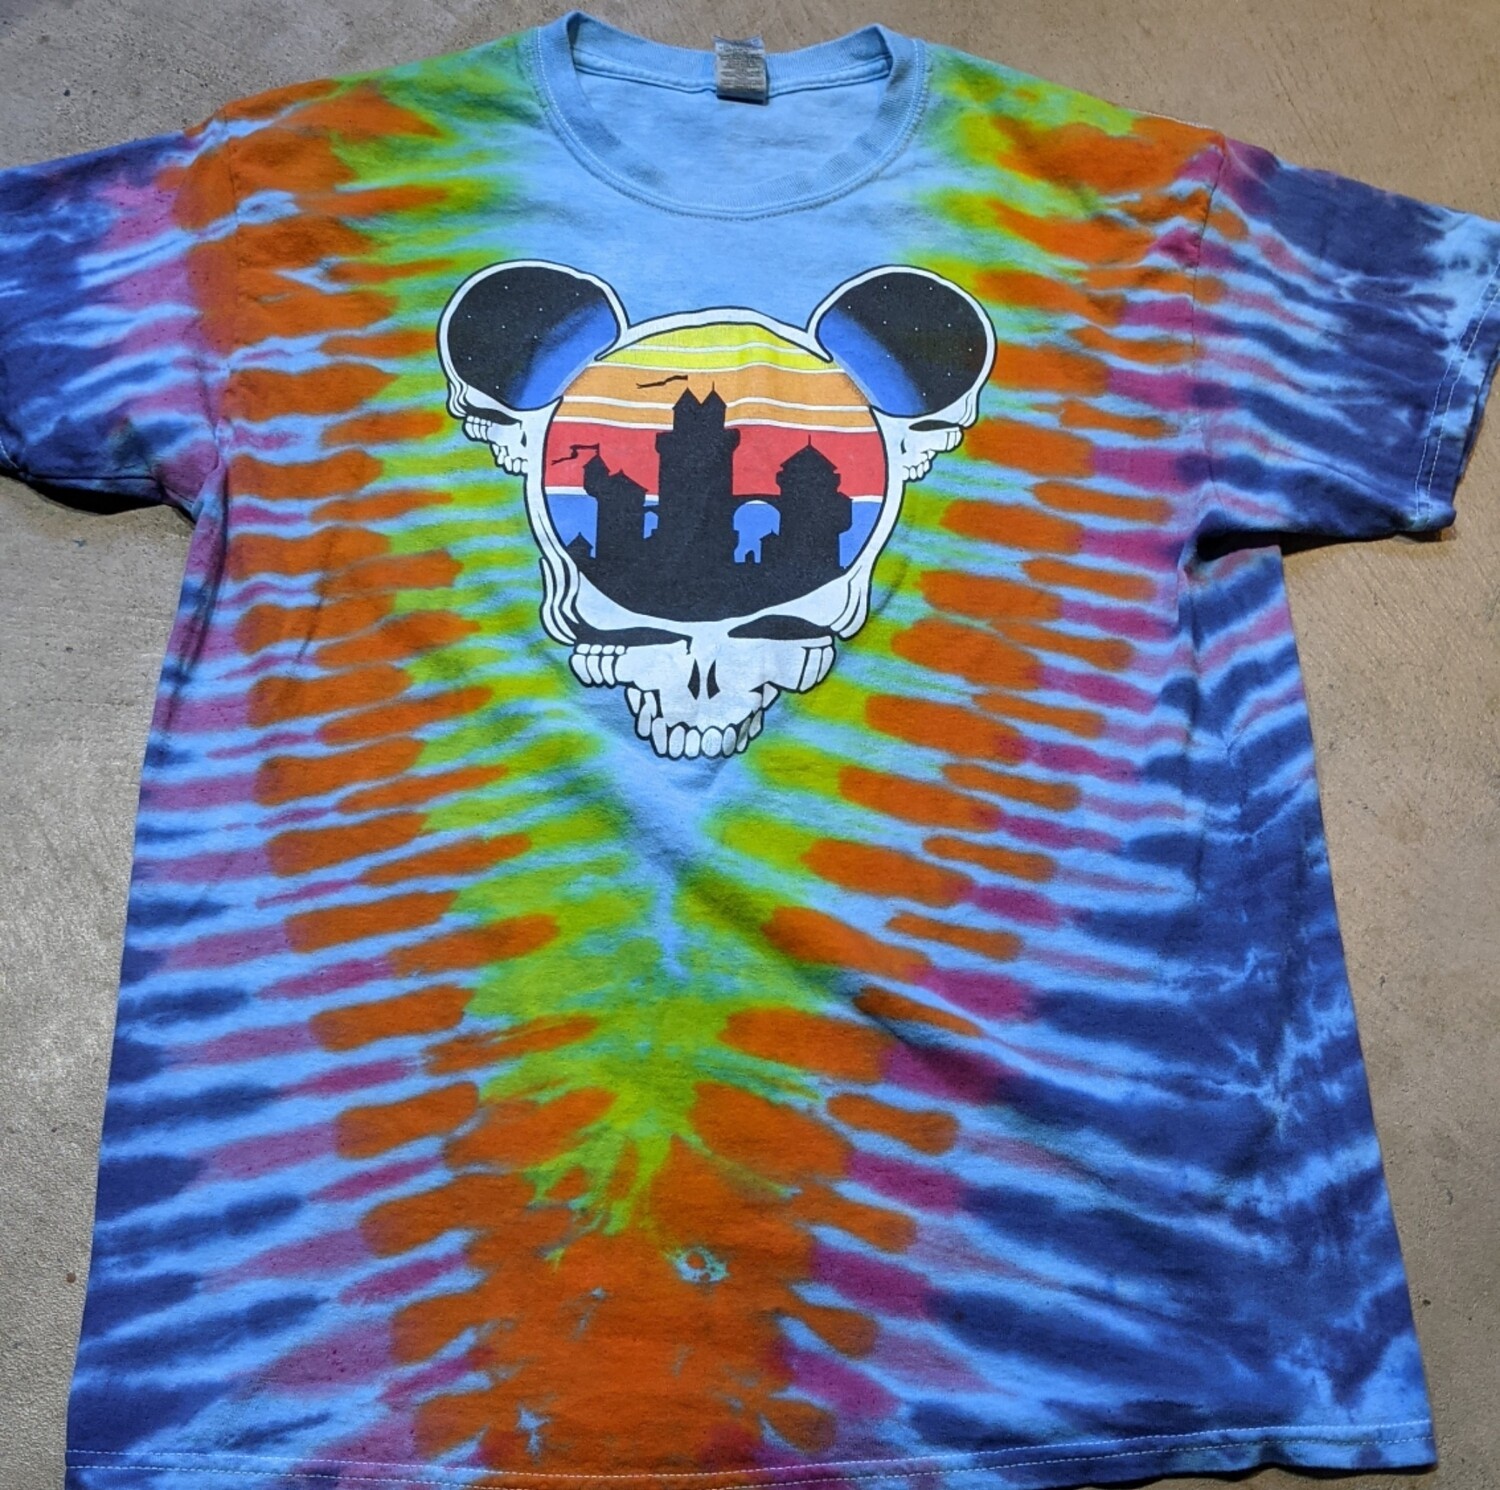 Adult Large Tie Dye (blue) Steal Your Ears T-Shirt - NO BACK PRINT short sleeve